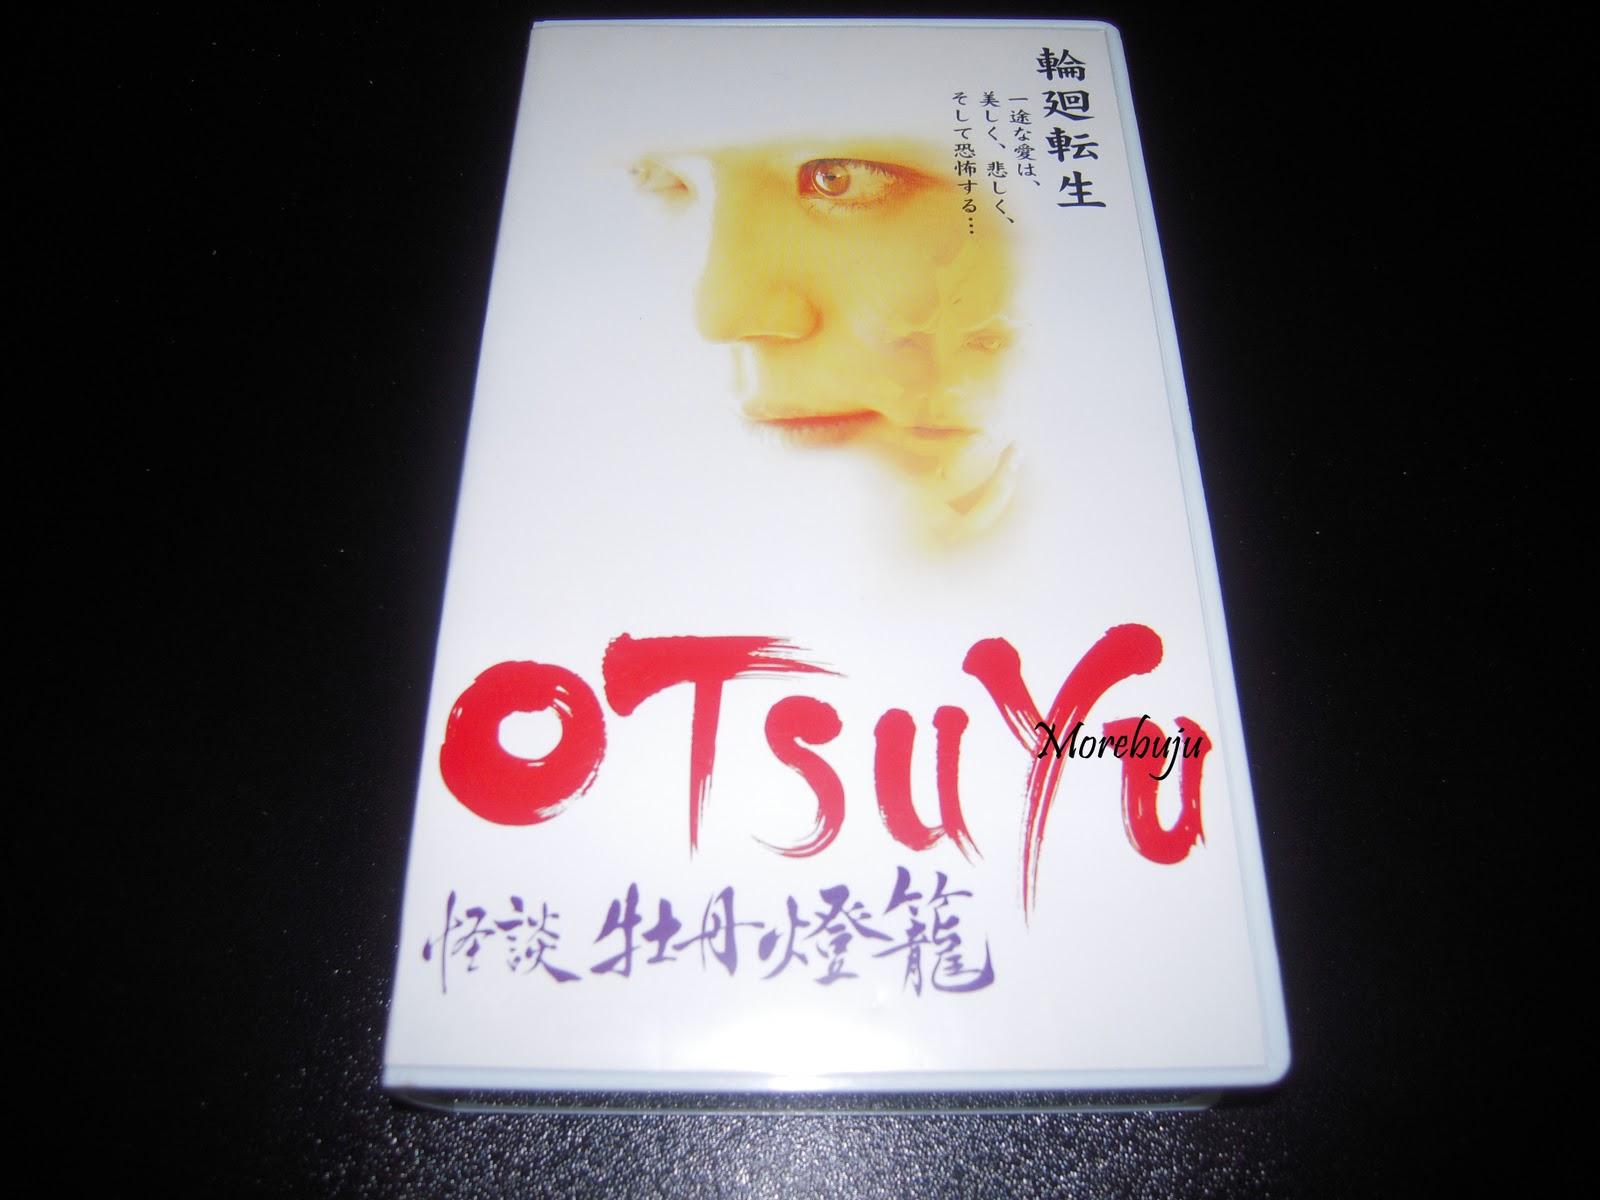 Otsuyu: Kaidan botan-doro movie